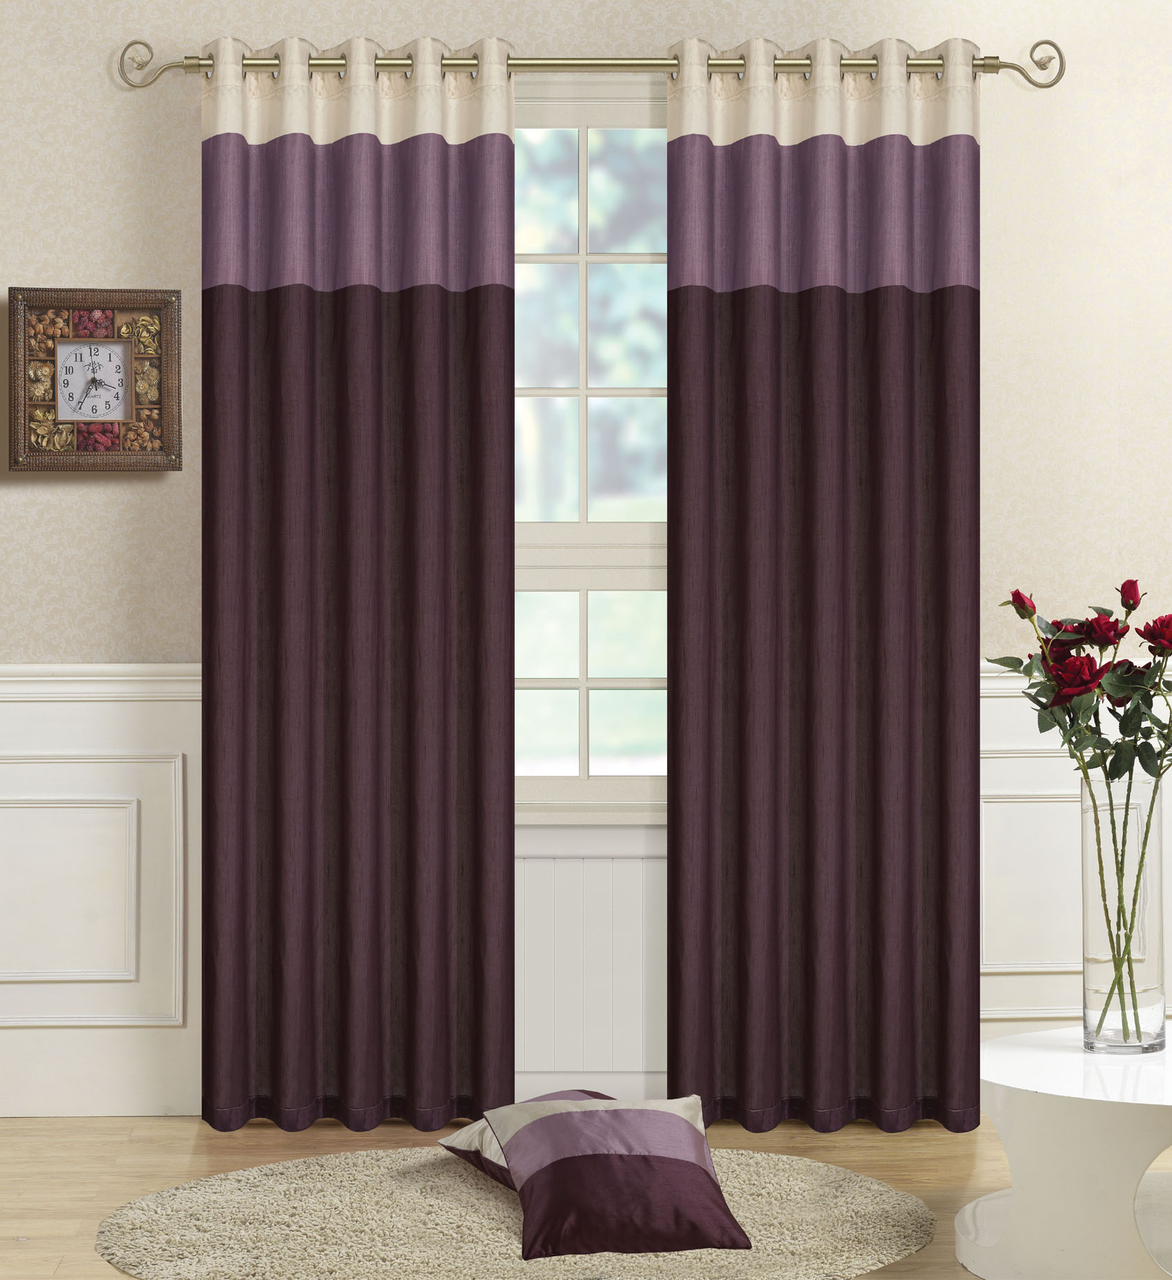 15 Beautiful Bedroom Designs With Purple Curtain Exquisite